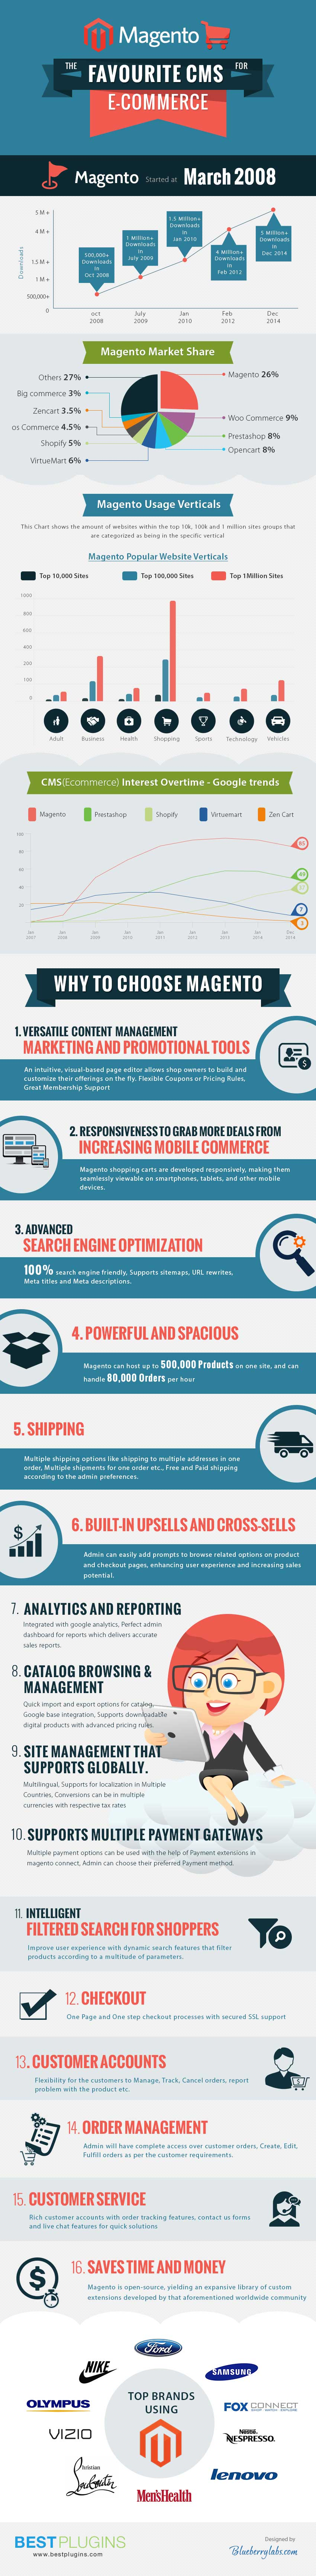 Magento---The-Favourite-CMS-for-Ecommerce-v3